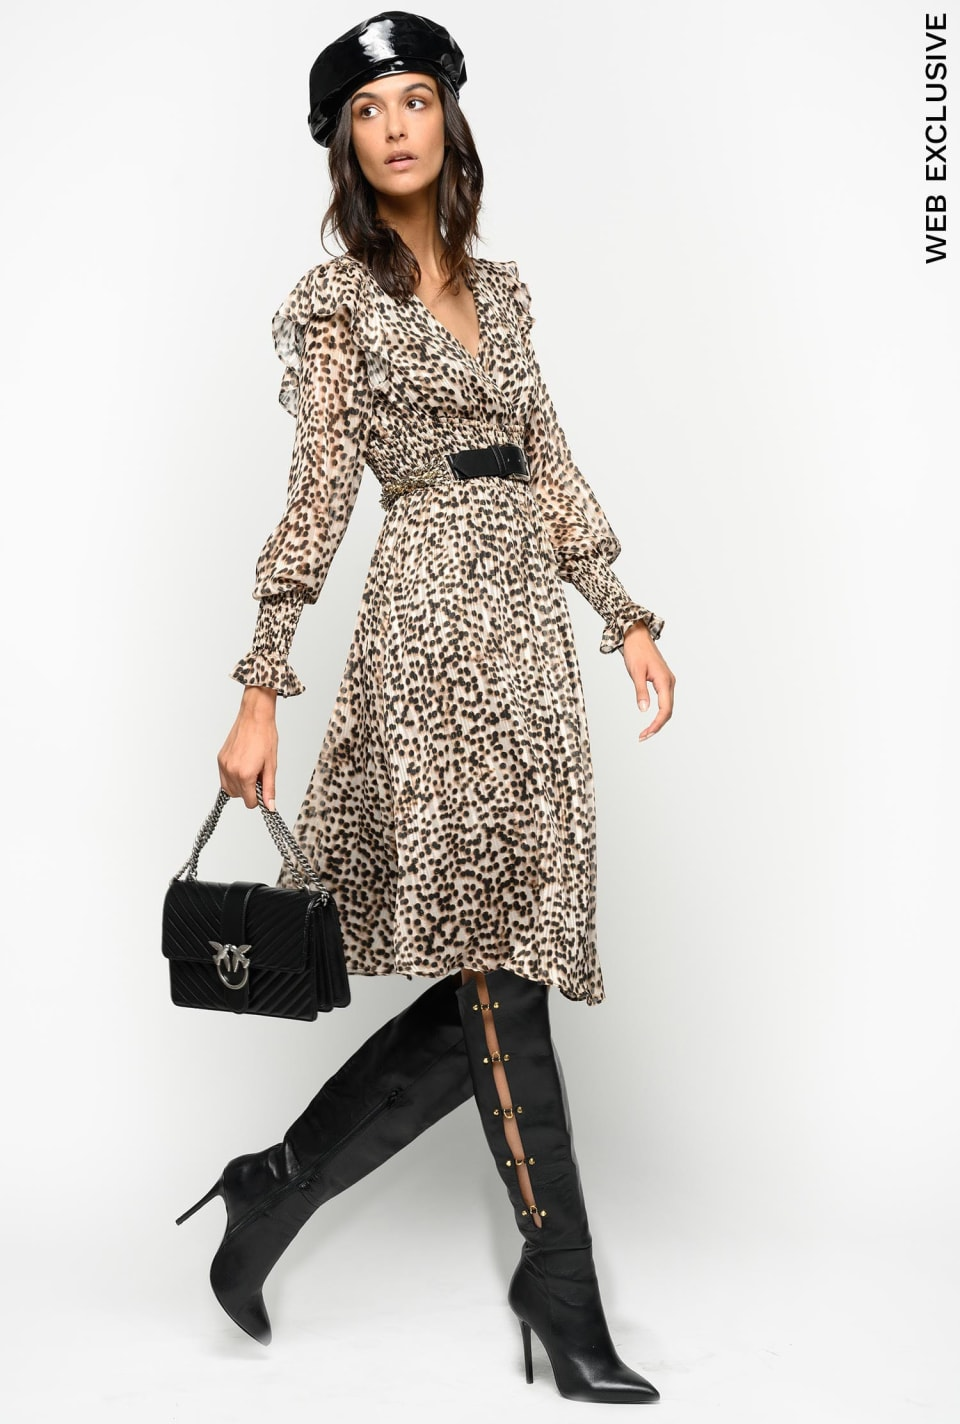 Animal polka dot pattern jacquard dress